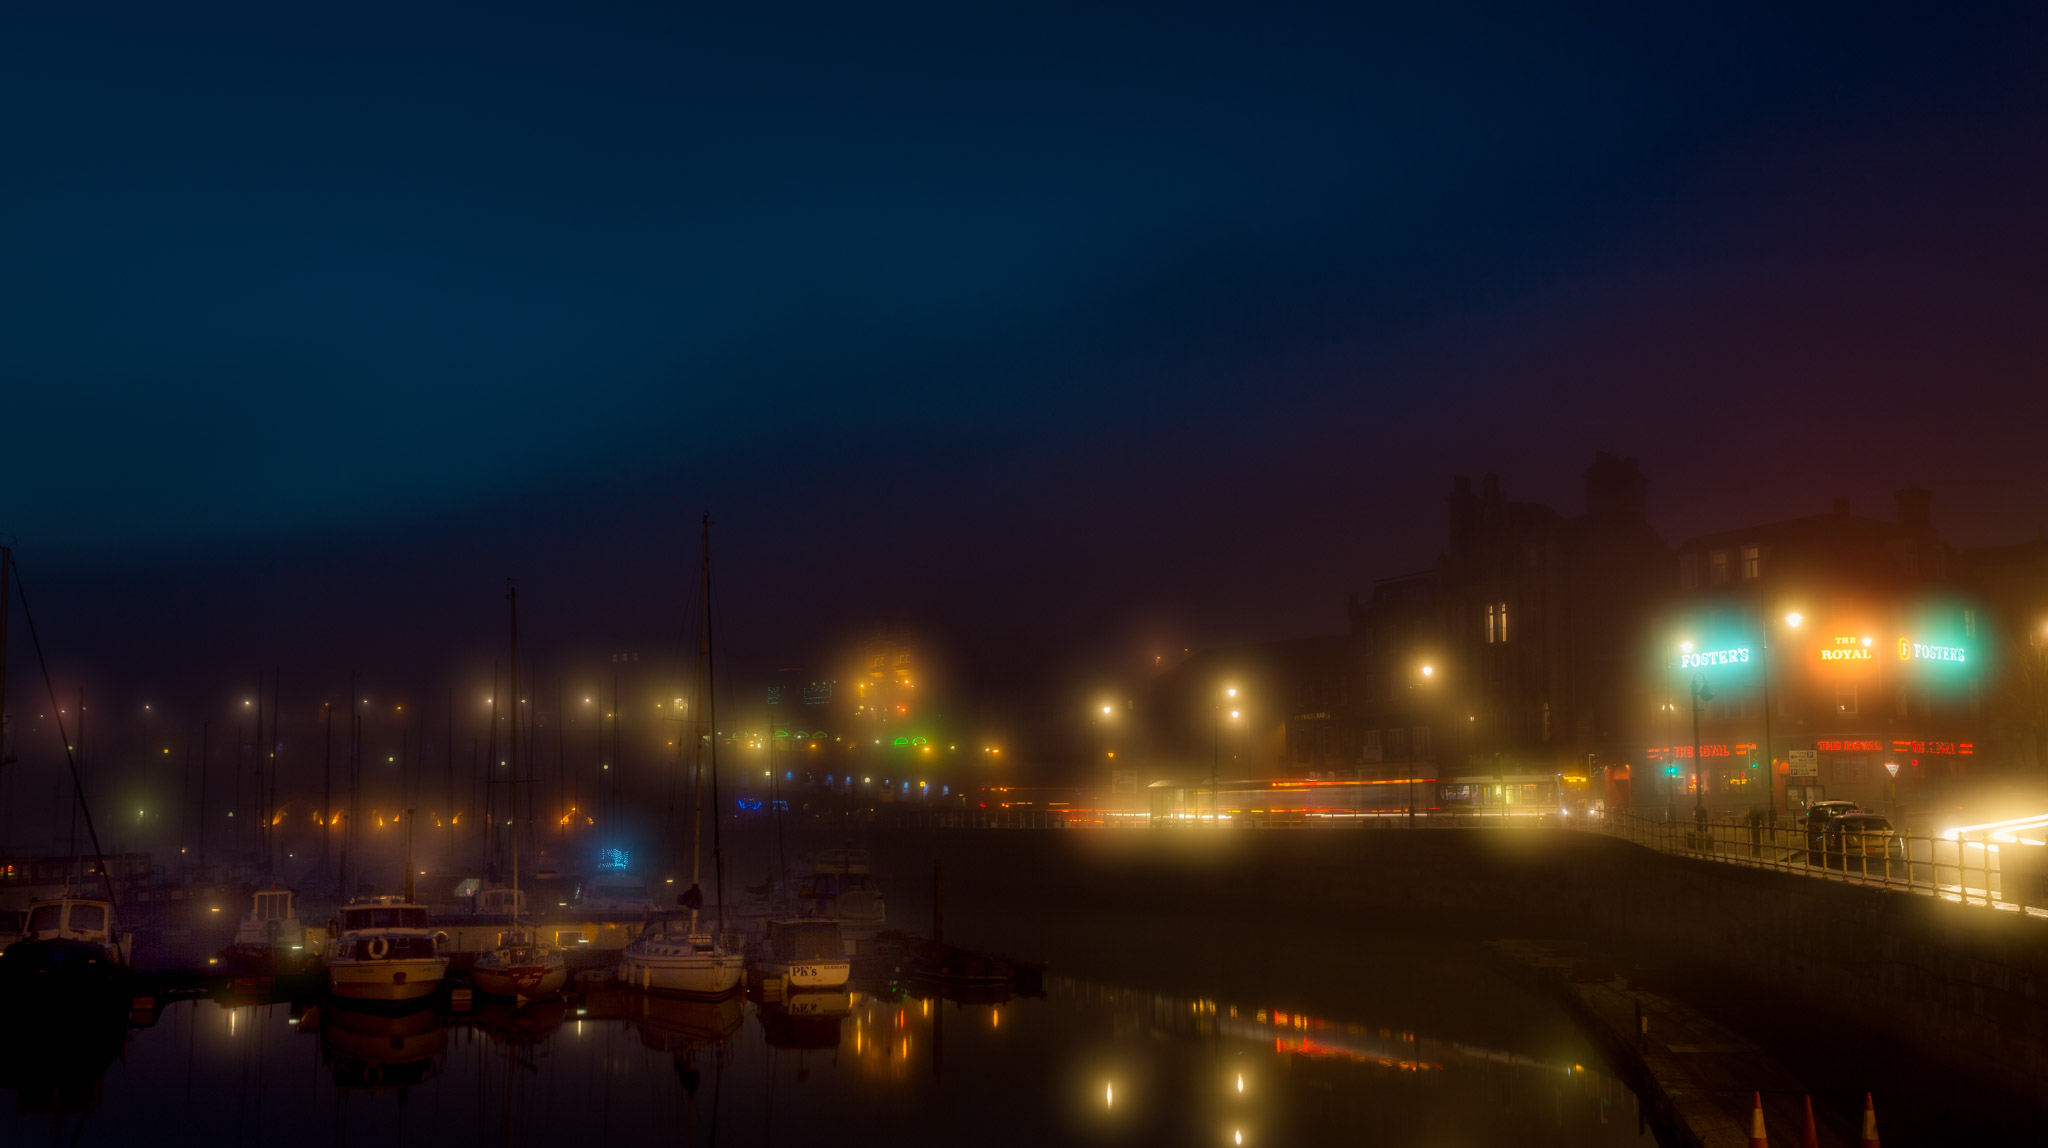 Ramsgate Harbour in the Fog